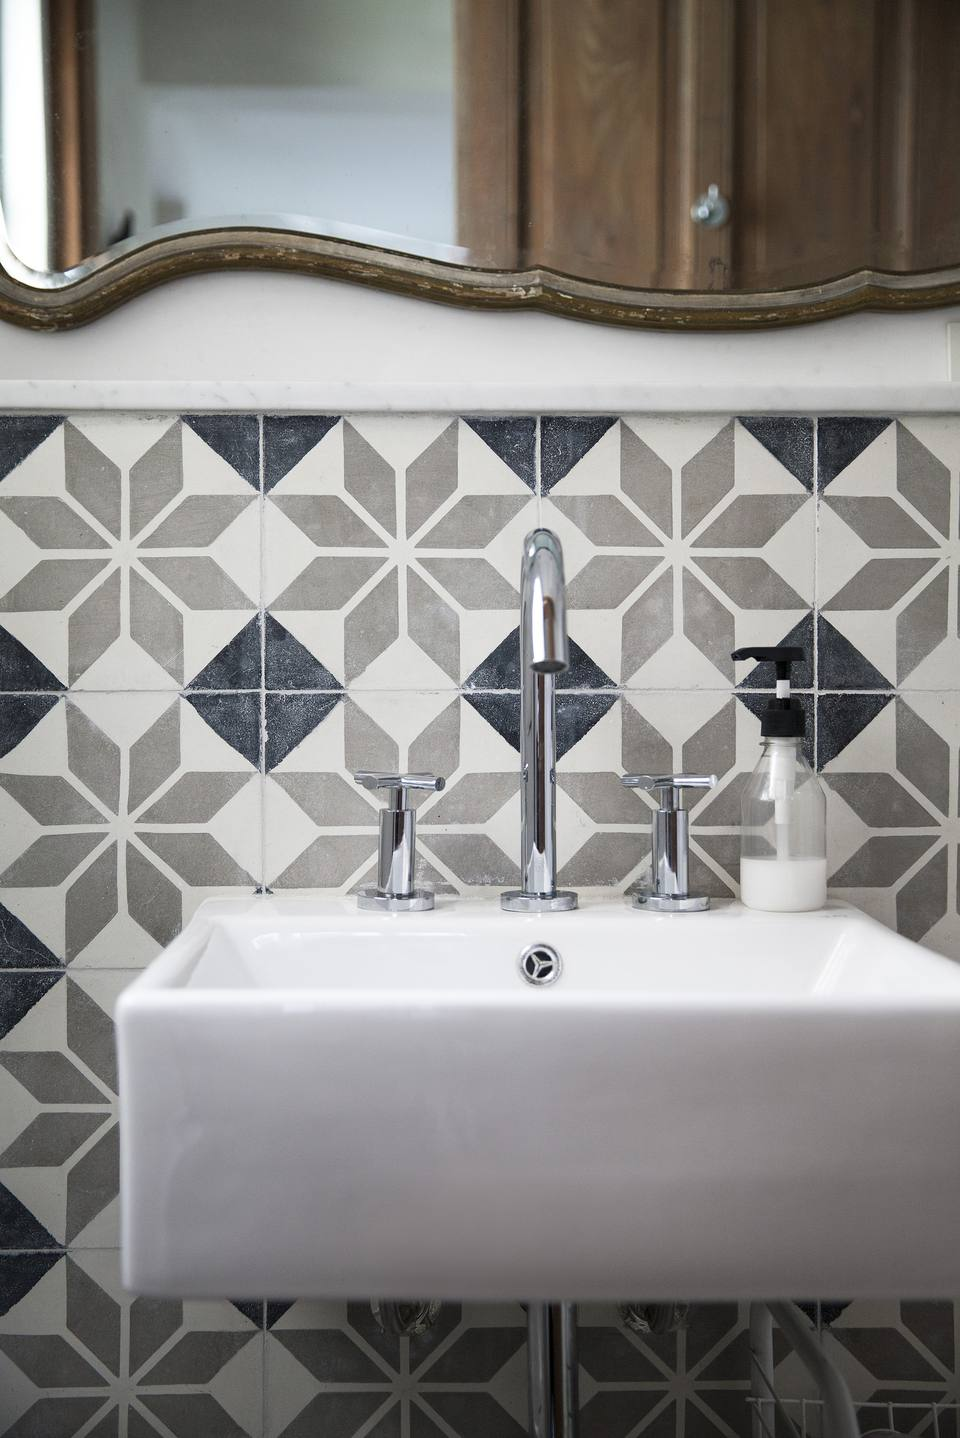 Bathroom wall tile guide from porcelain to mosaics bathroom wall tile porcelain mosaic dailygadgetfo Image collections